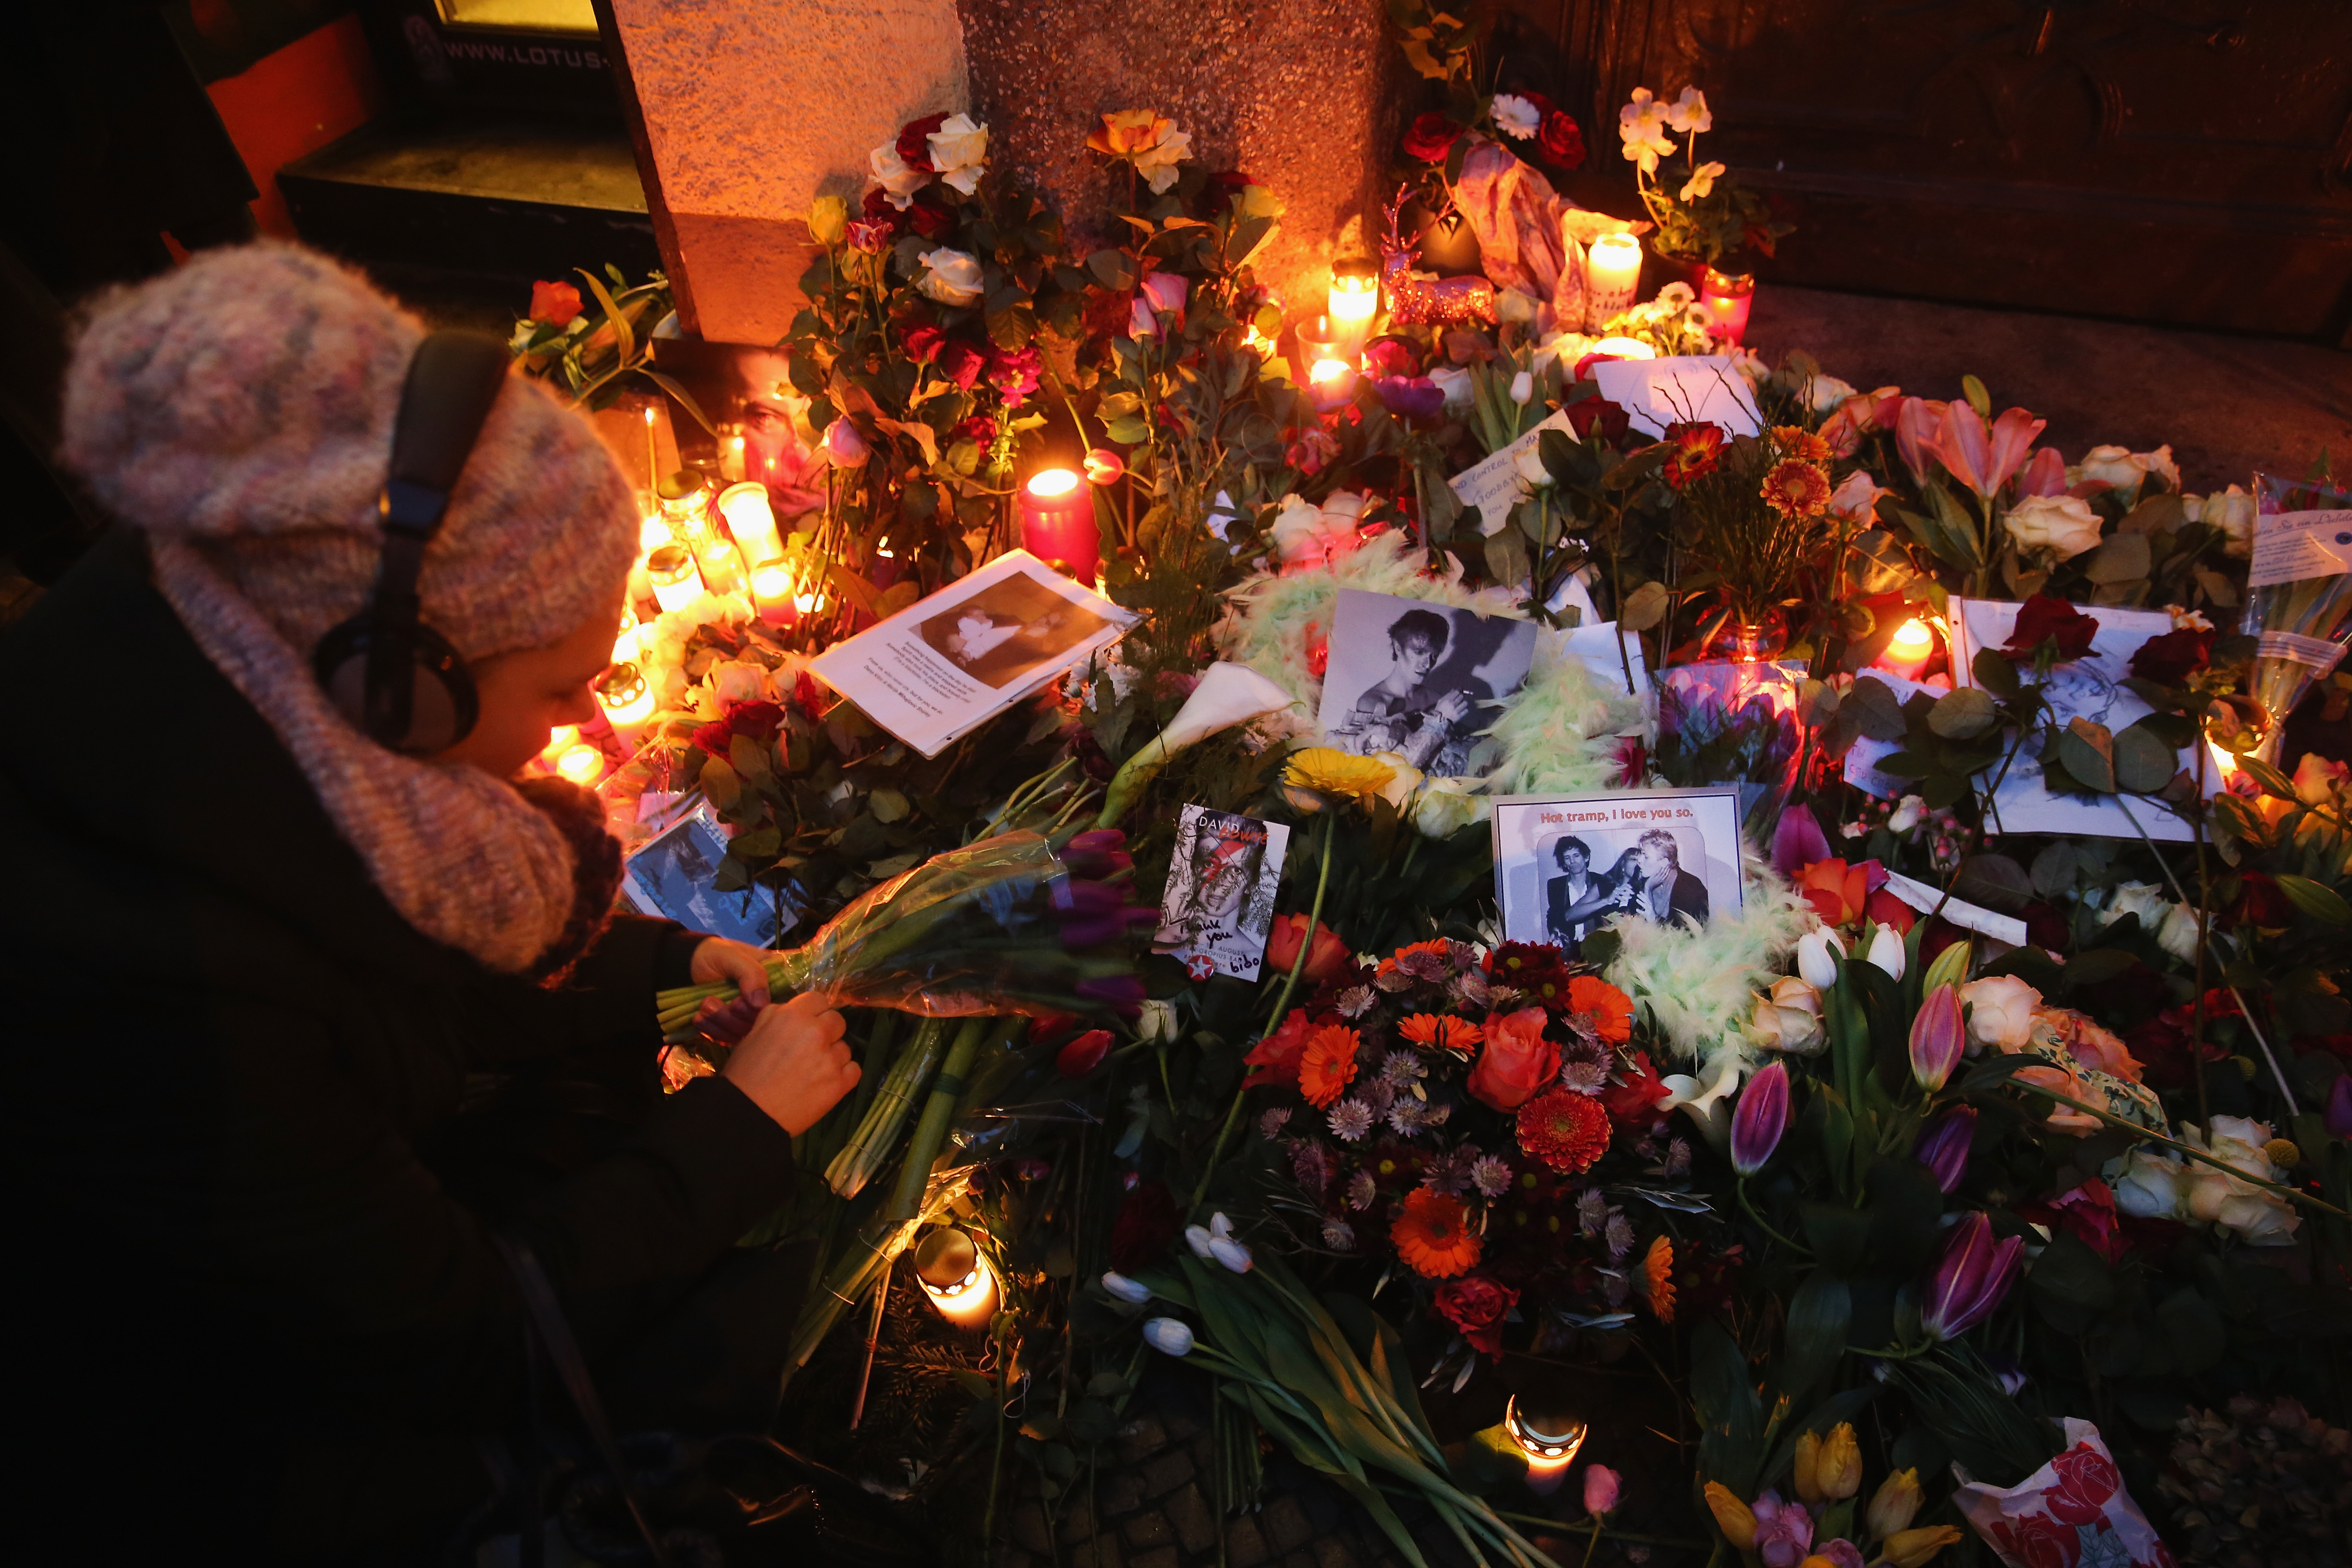 Fans lay flowers and candles at the doorstep where Bowie once lived in Berlin, Germany (Photo: Sean Gallup/Getty Images)